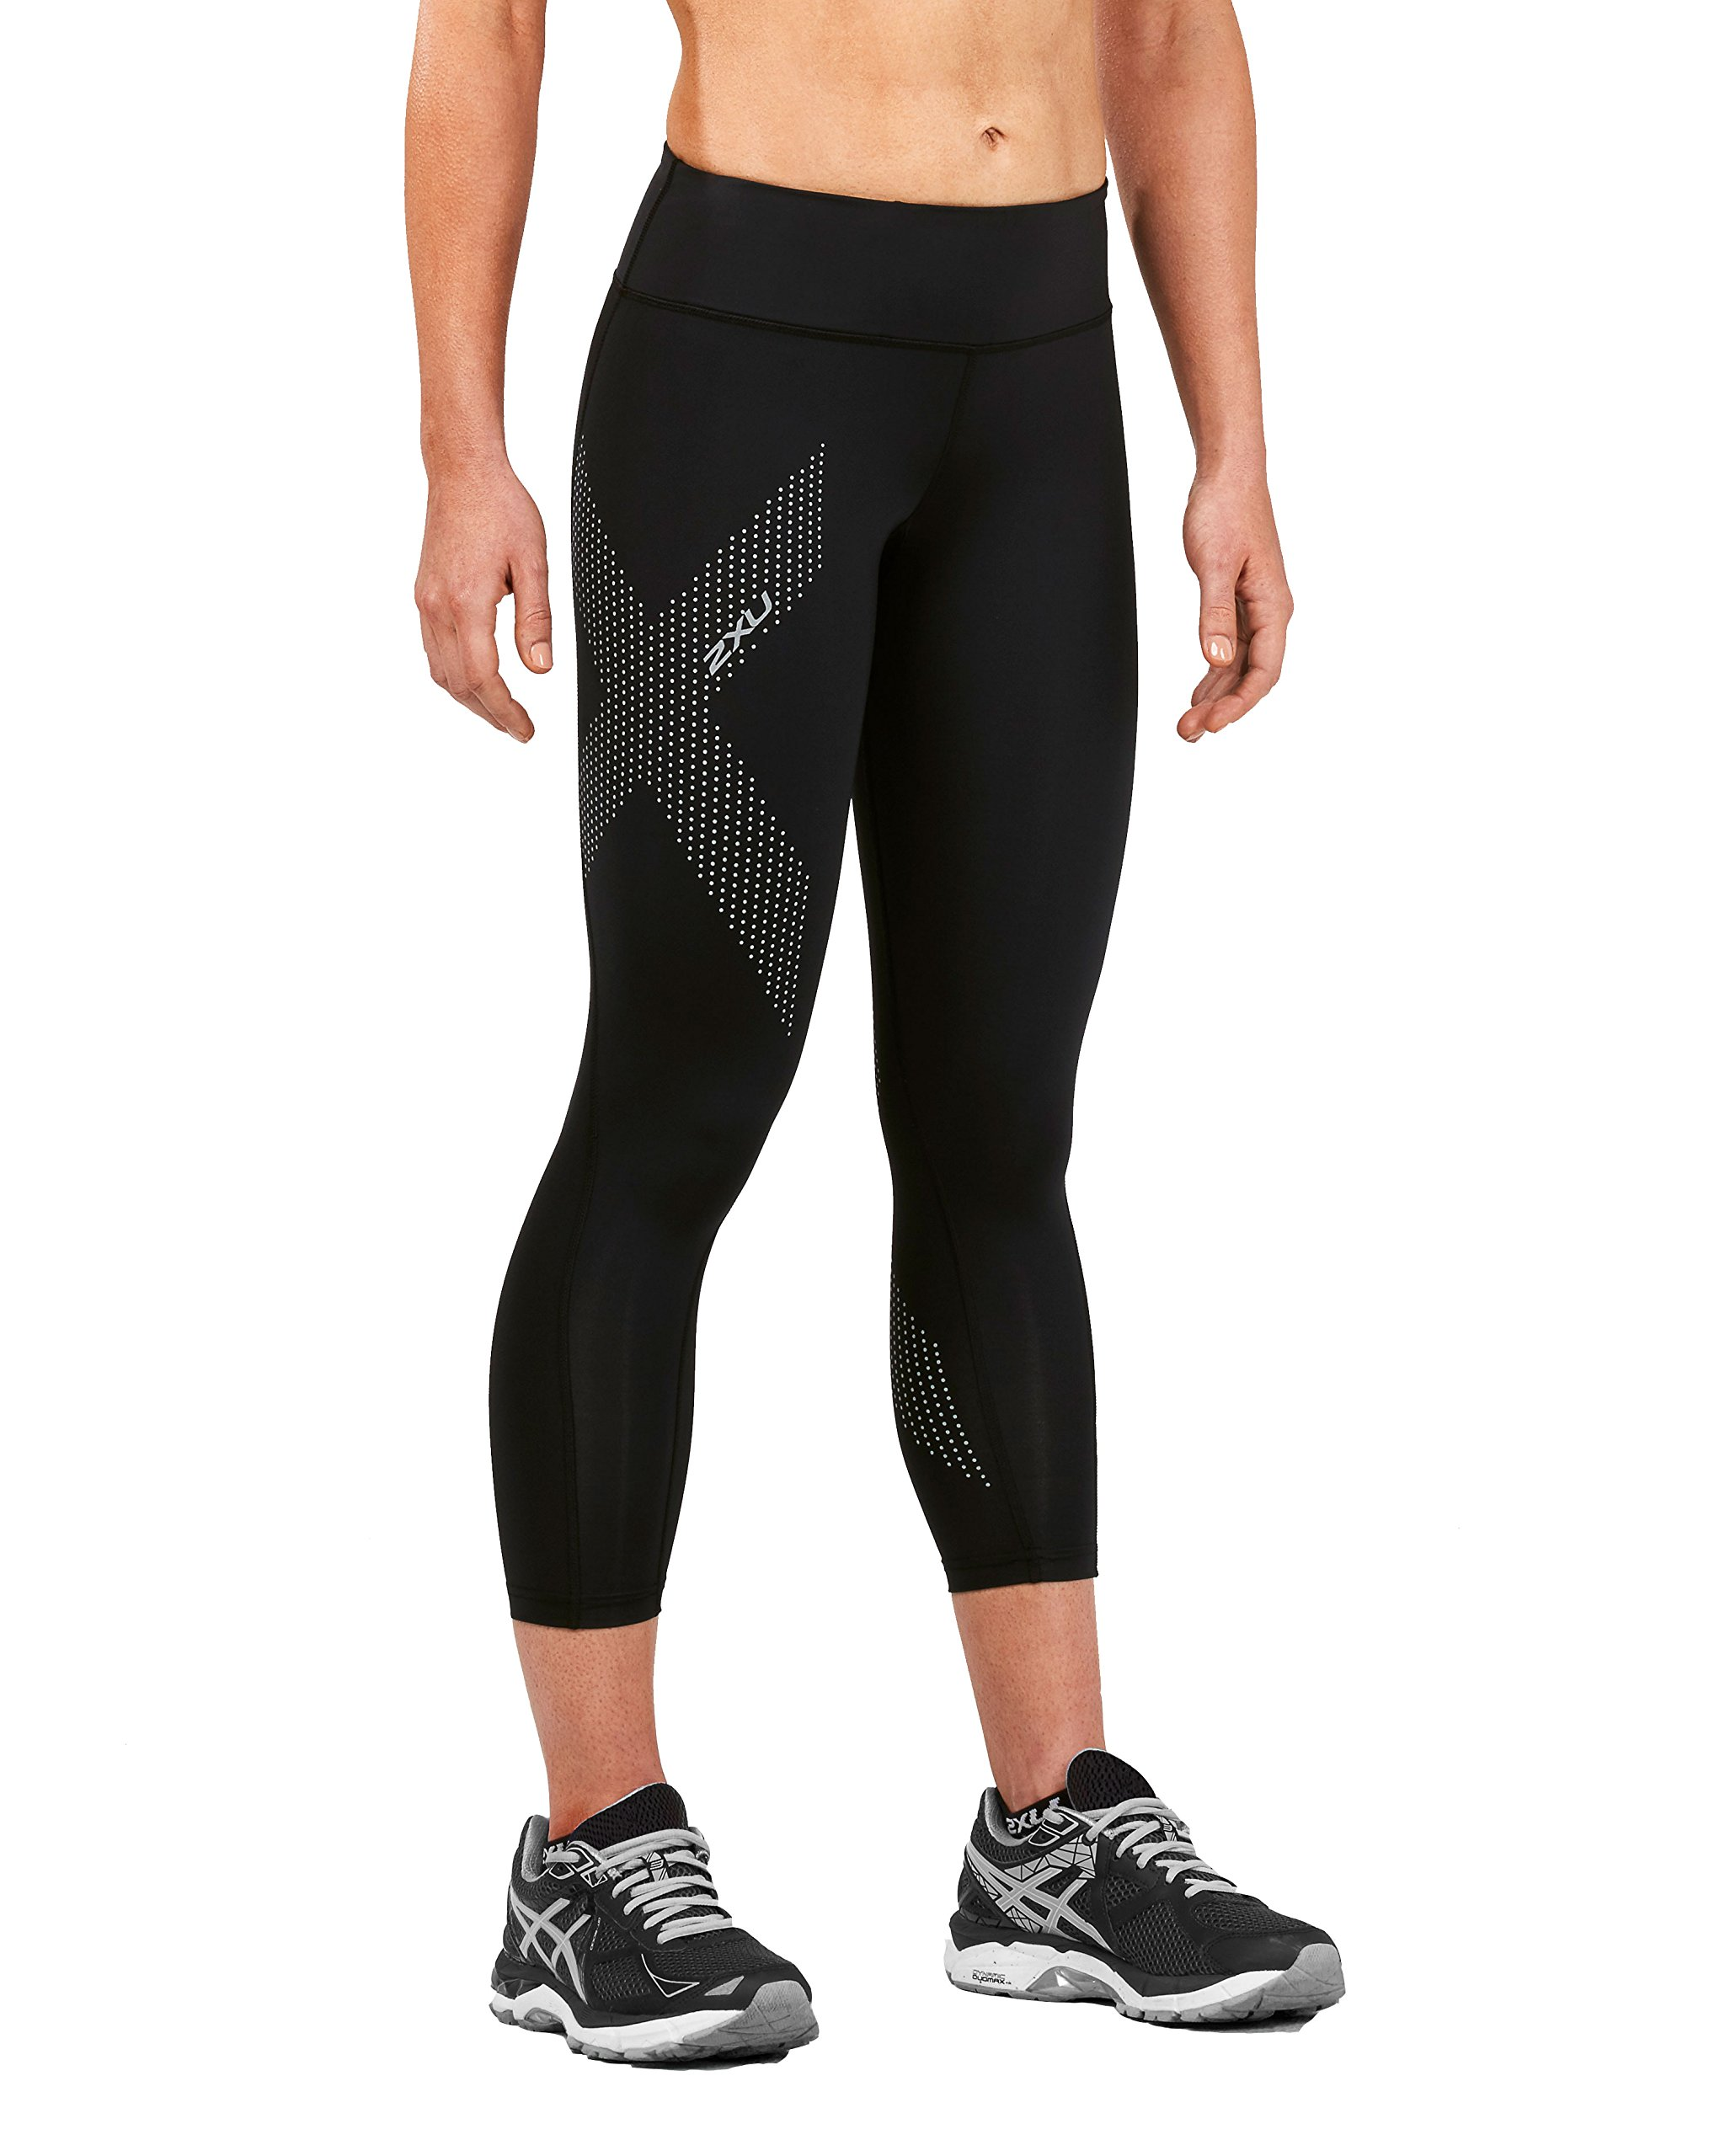 2XU Women's Mid-Rise Compression 7/8 Tights (Black/Dotted Reflective Logo, Small) by 2XU (Image #1)